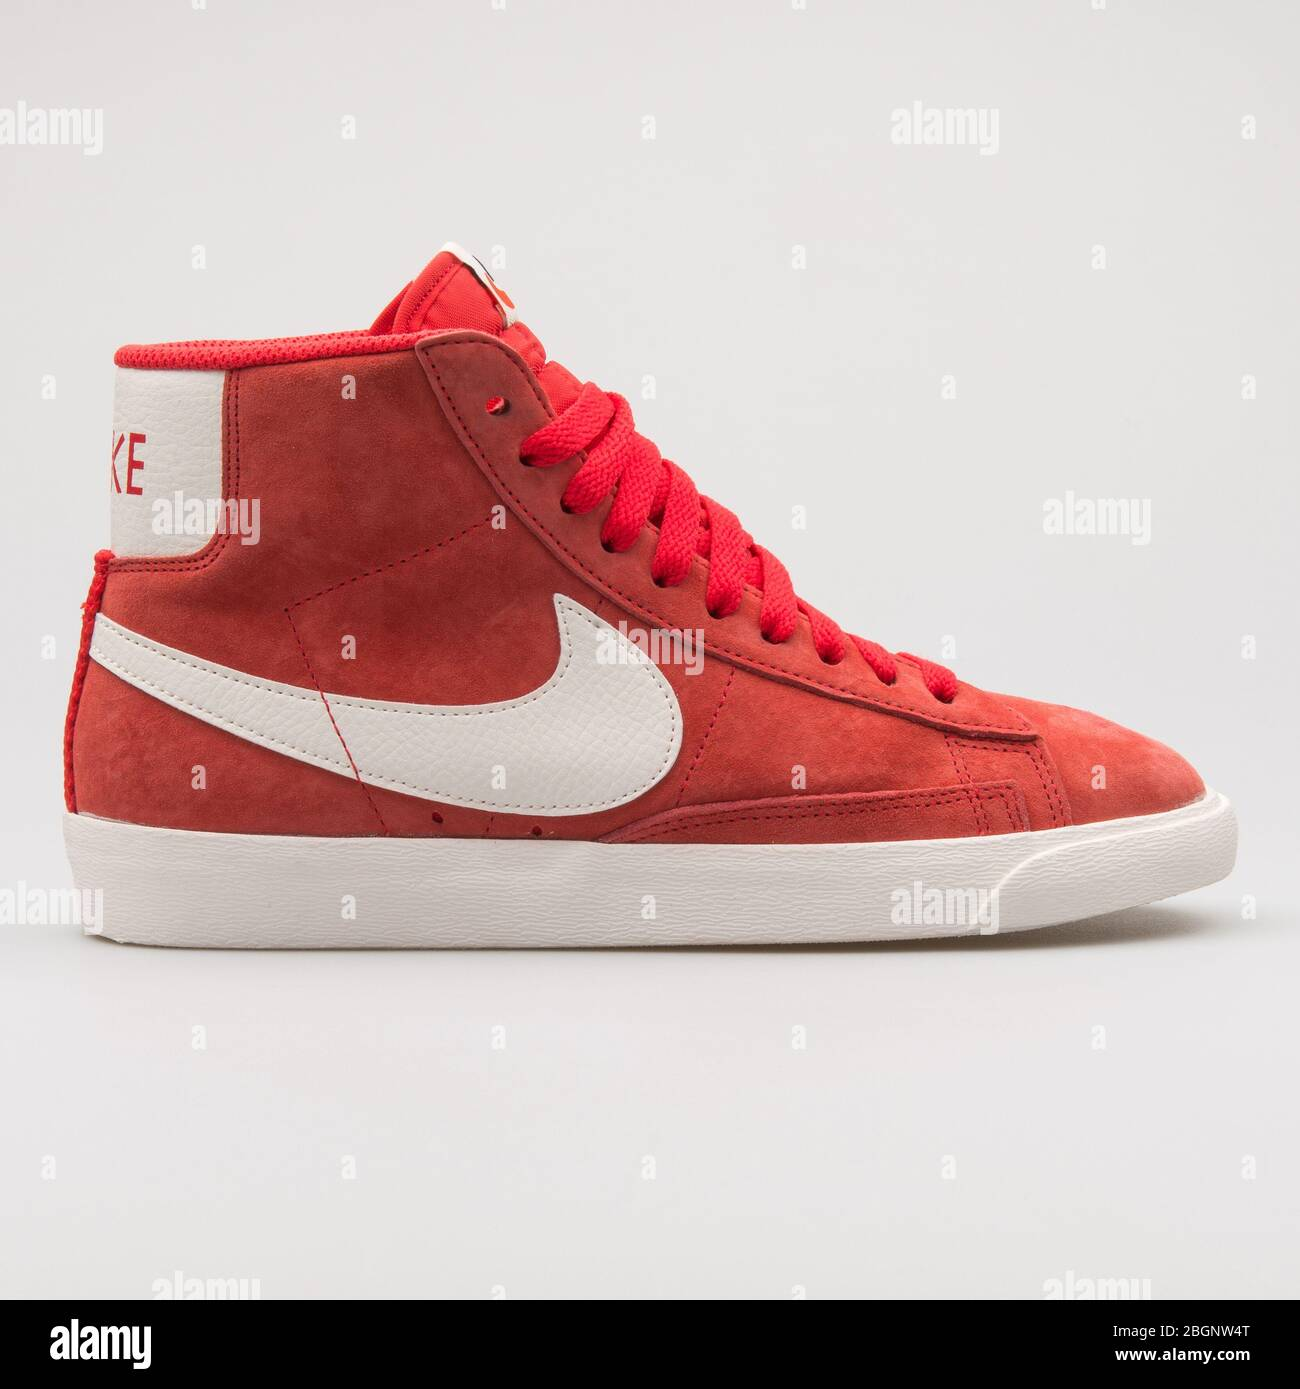 Nike Blazer 77 suede red and white